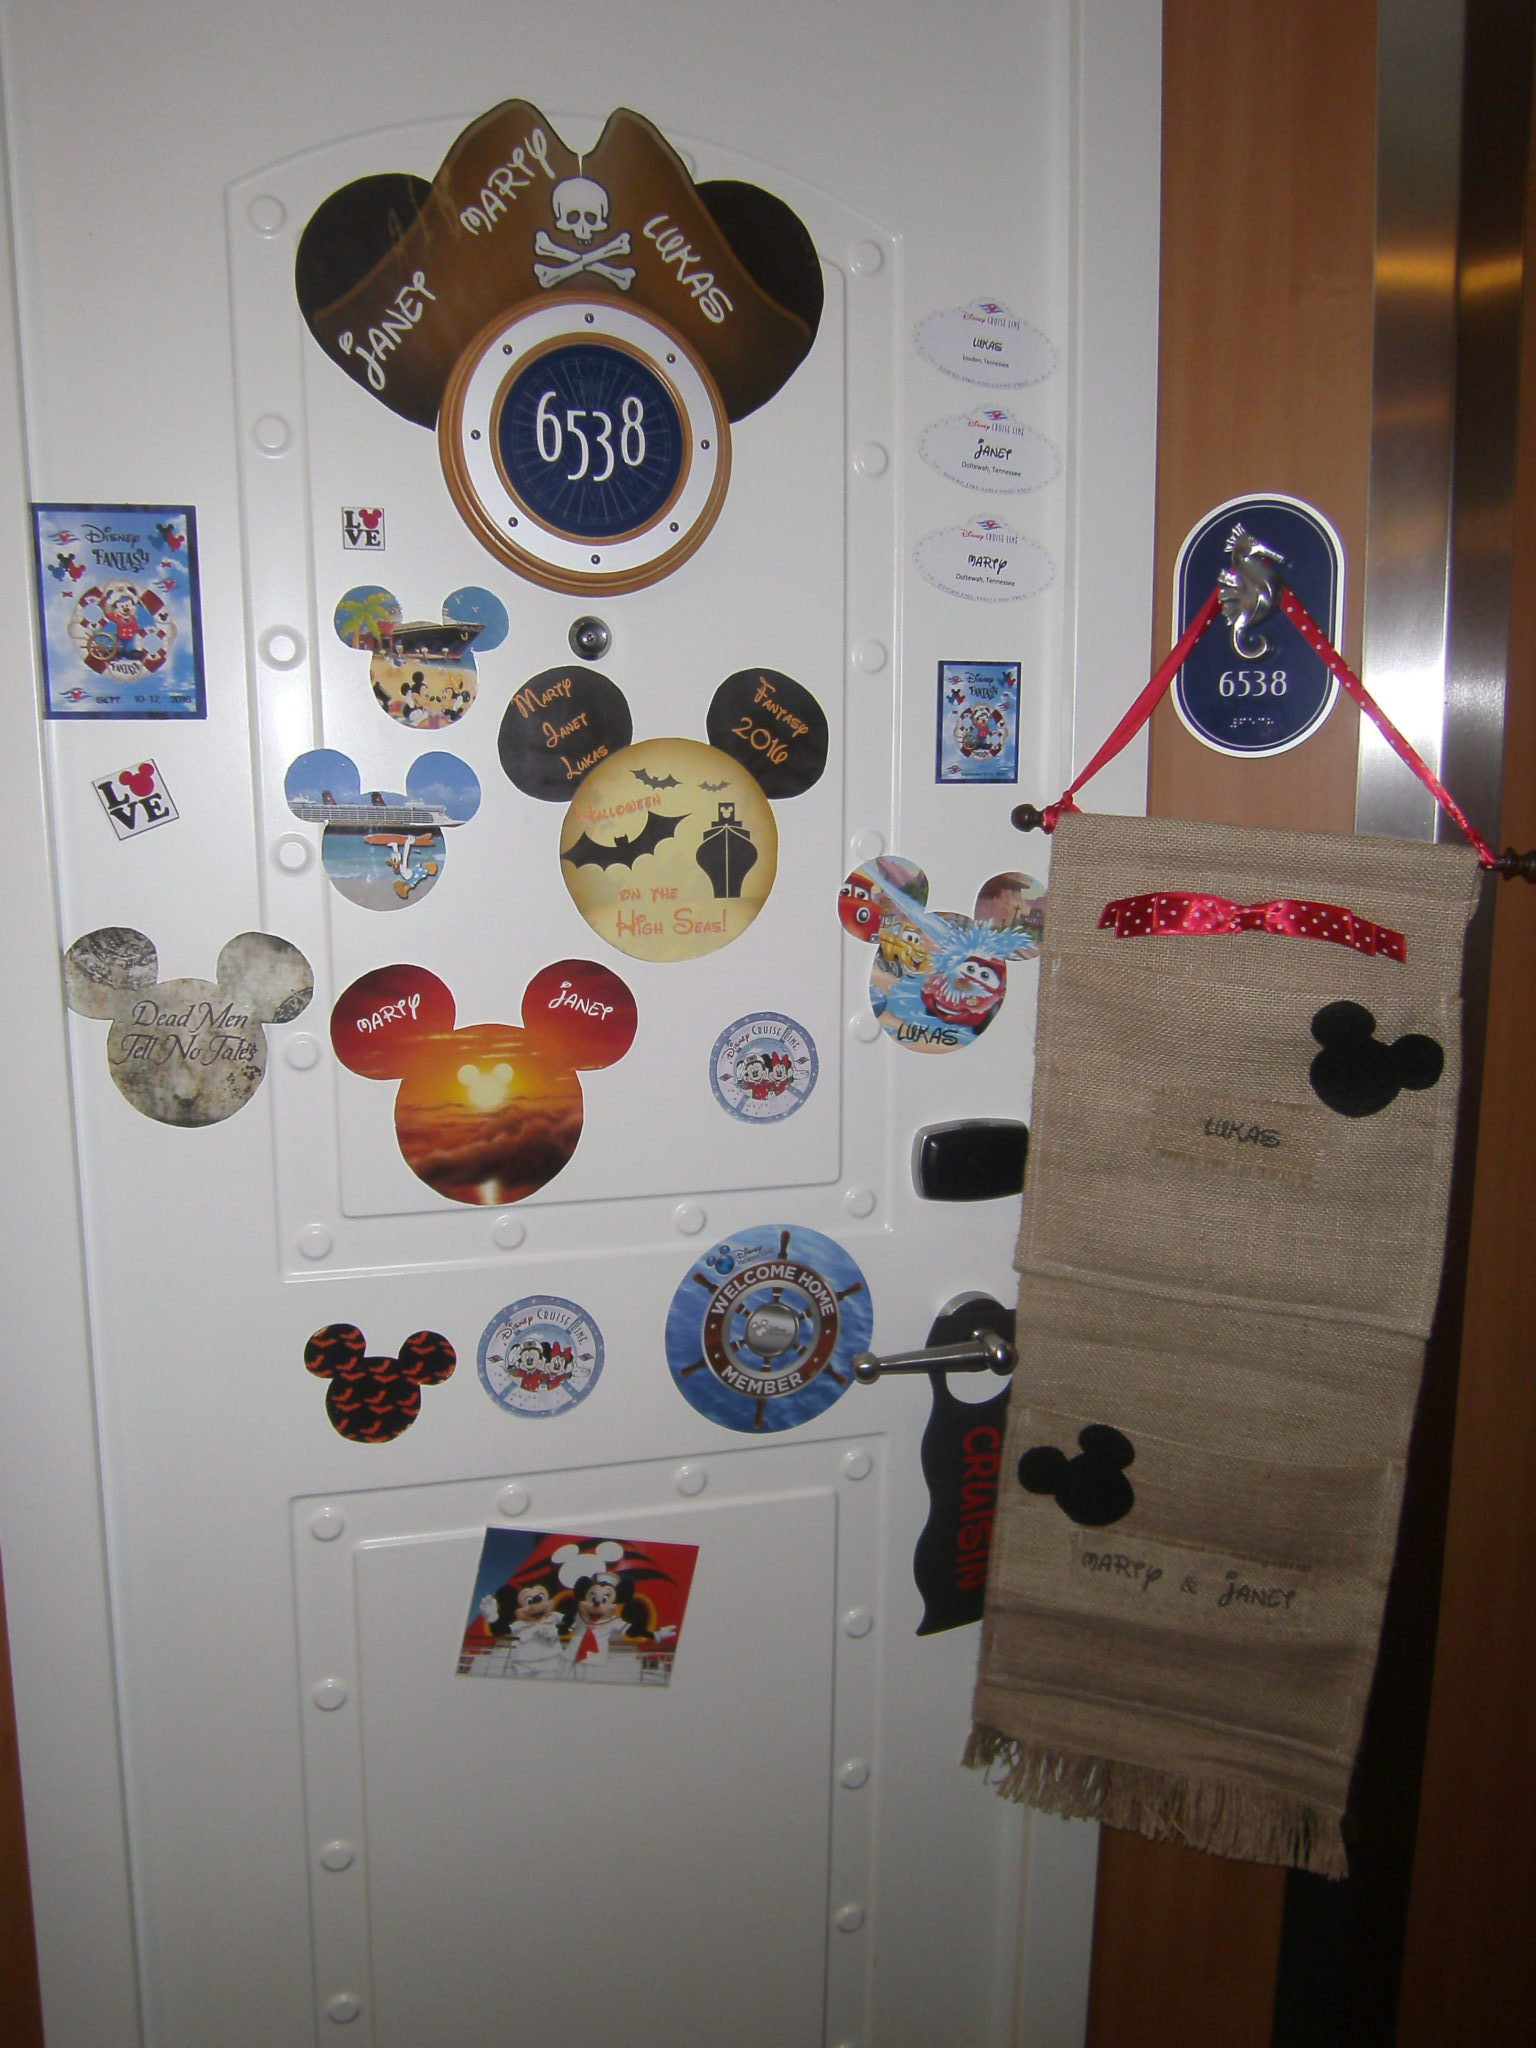 photograph about Disney Cruise Door Decorations Printable called Straightforward Ways For Do-it-yourself Disney Cruise Doorway Magnets In the direction of Beautify